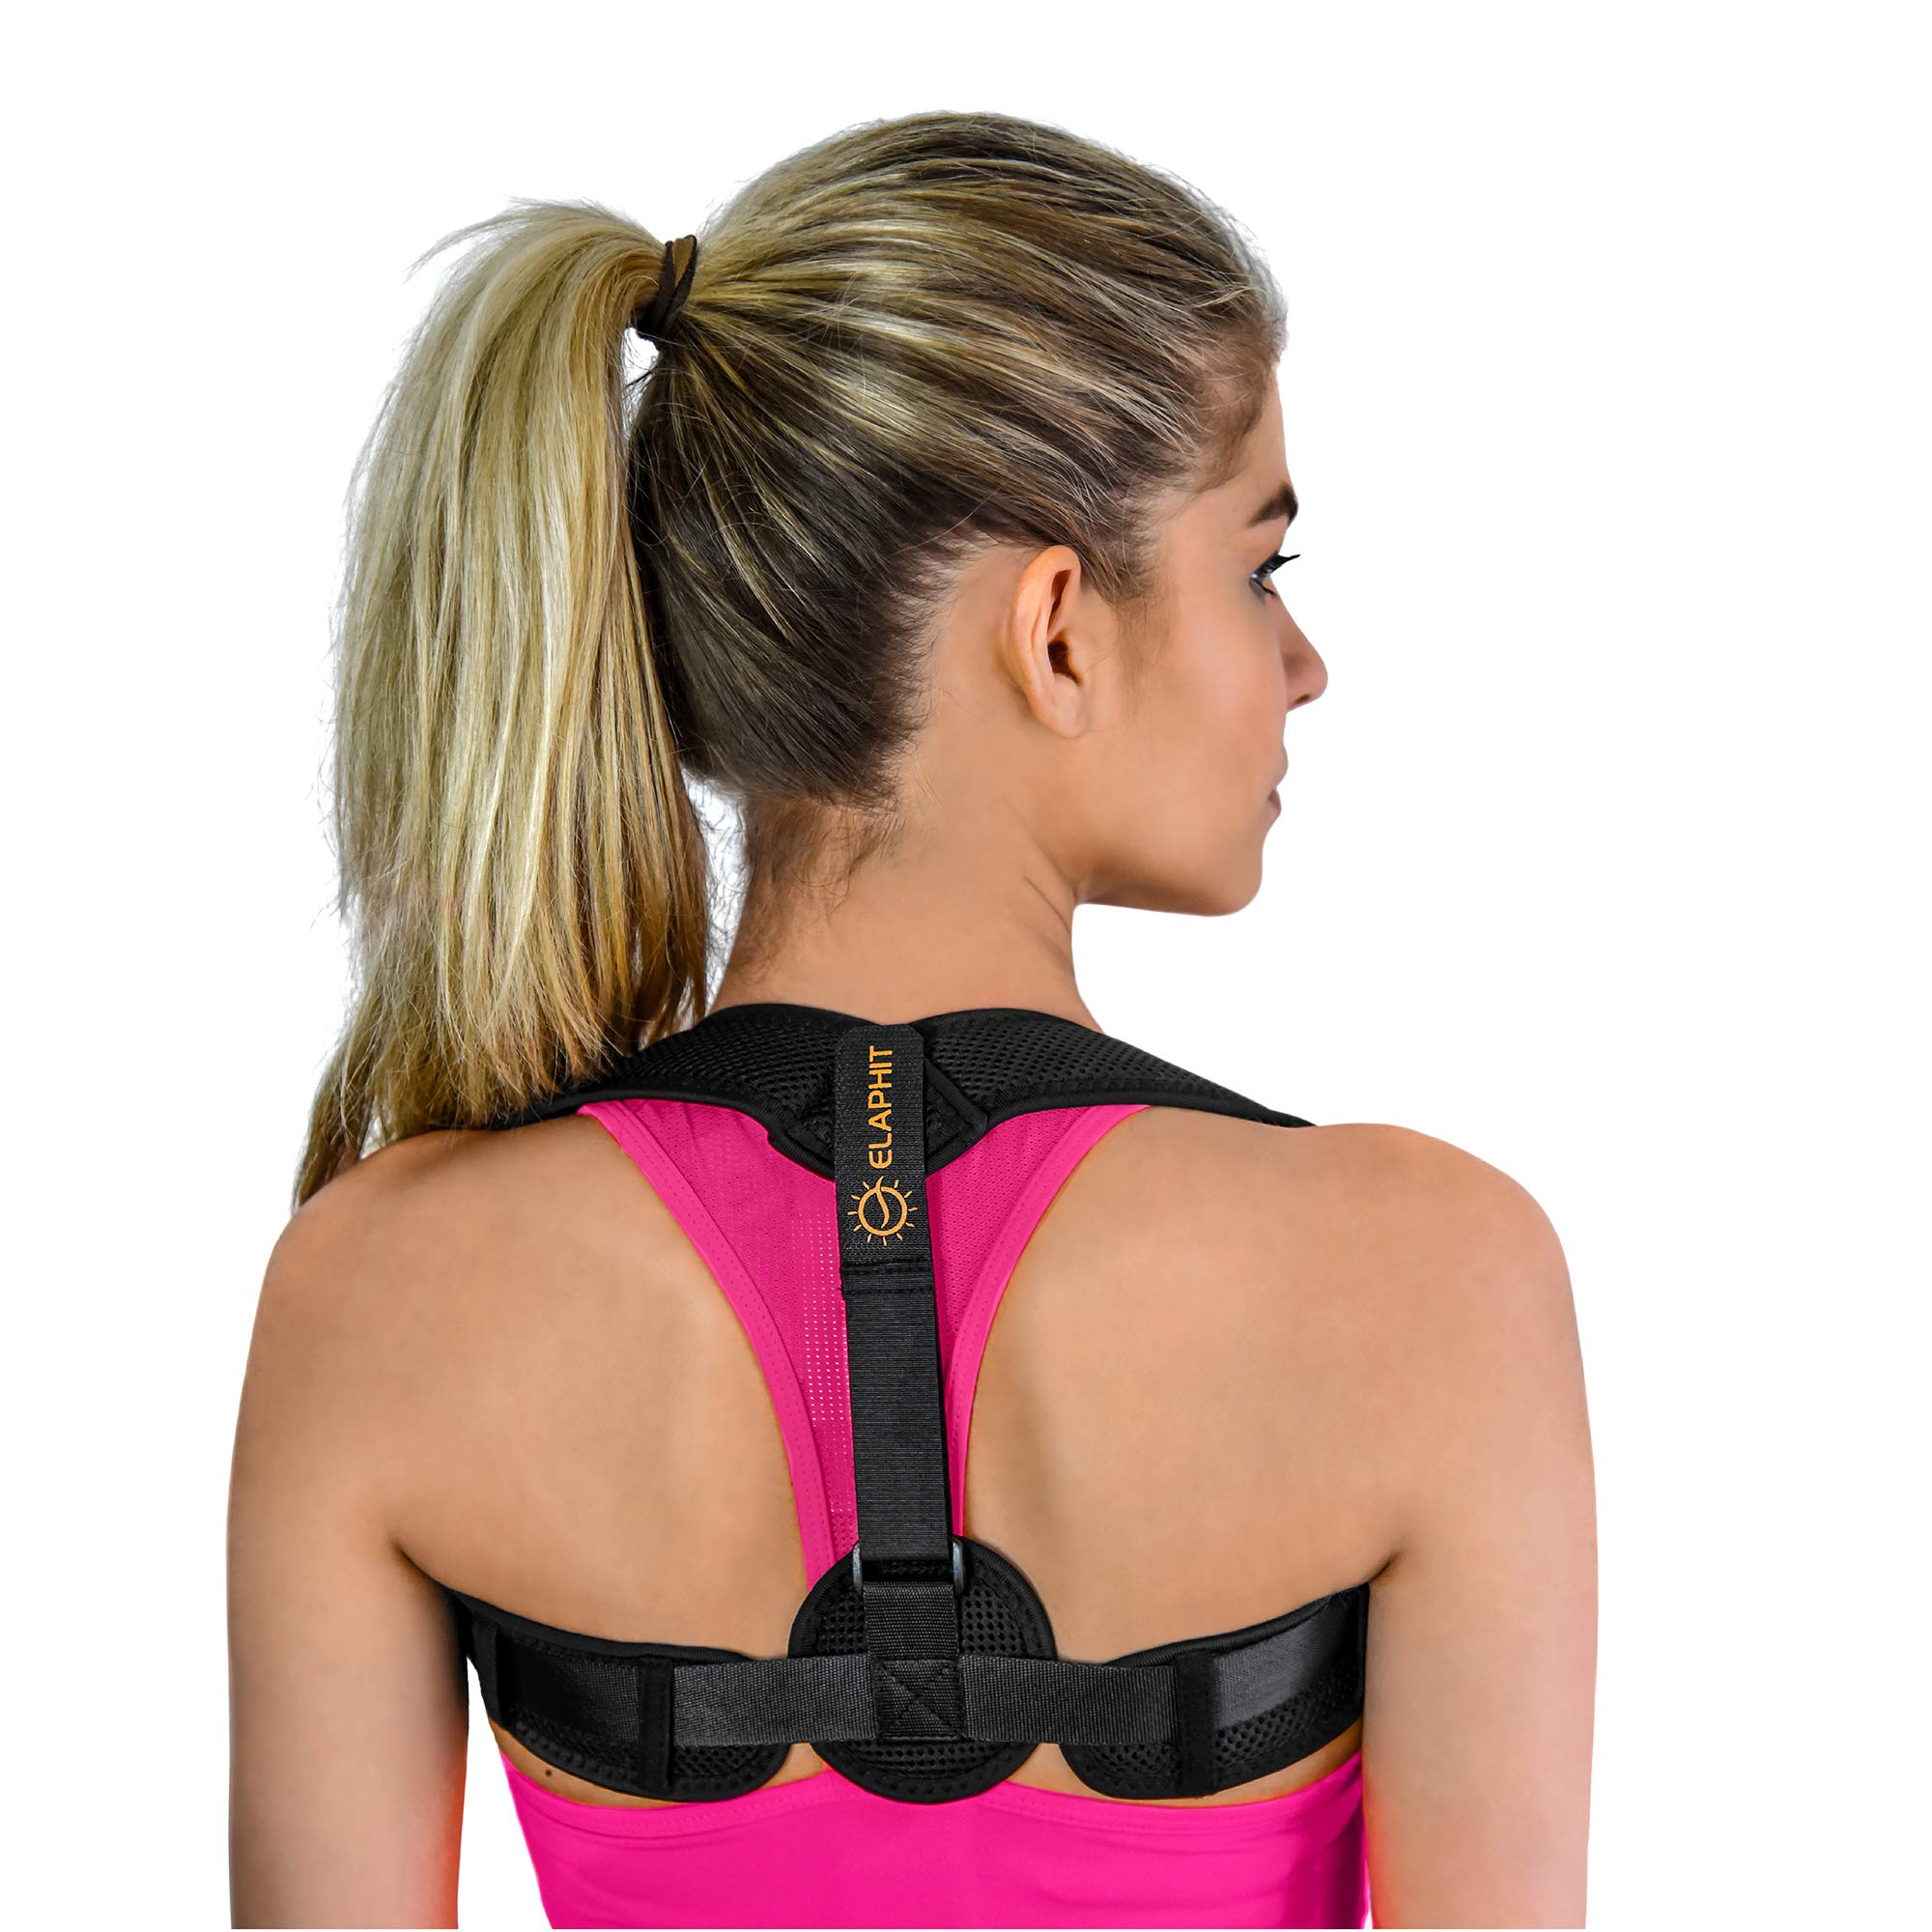 Posture Corrector for Men and Women, Imperceptible Back Brace Prevents Slouching, Helps Relieve Back Pain and Supports Correct Upright Posture